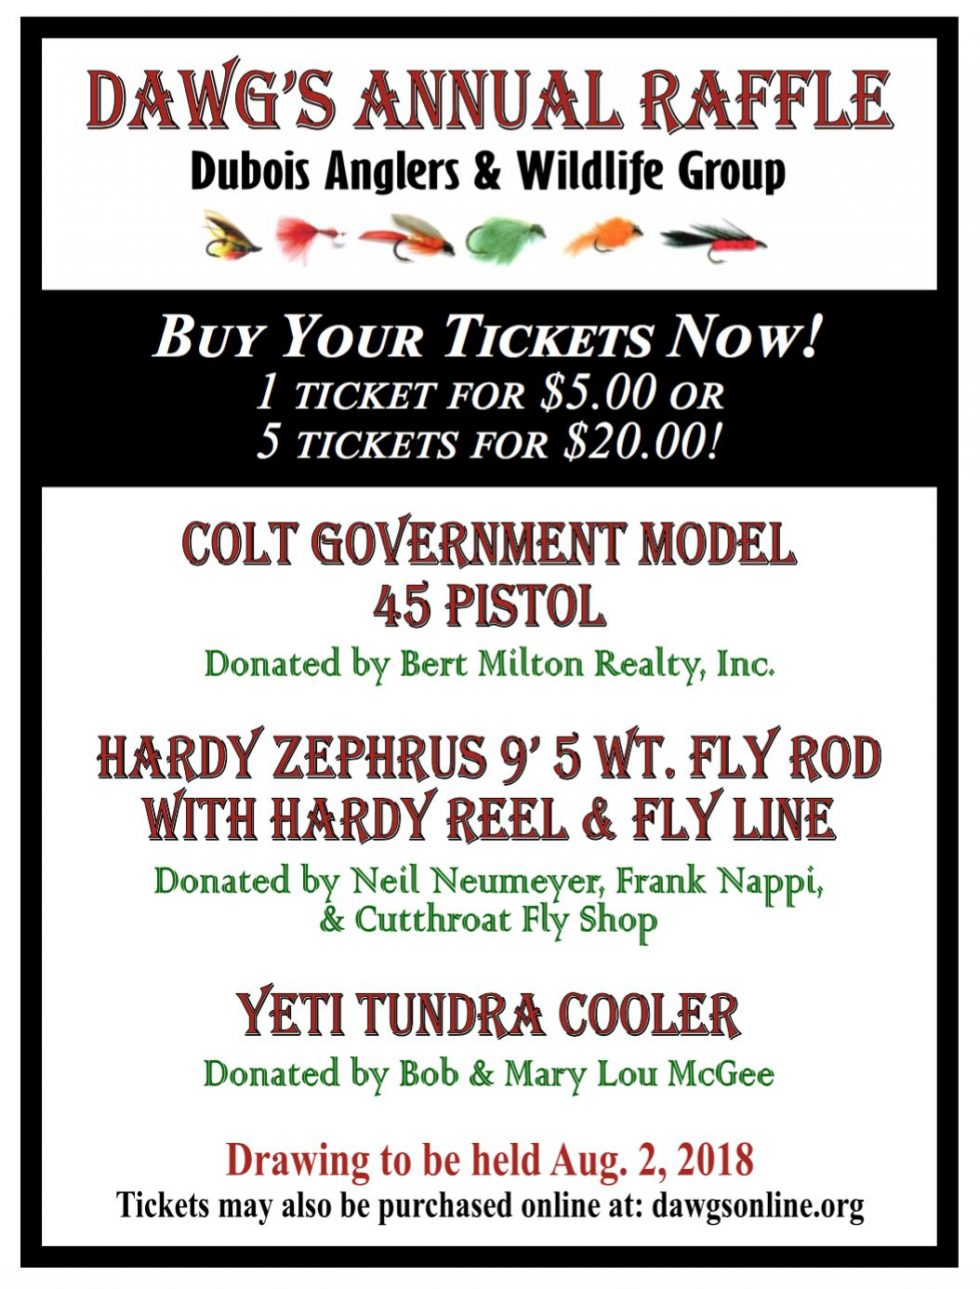 Win dubois anglers and wildlife group